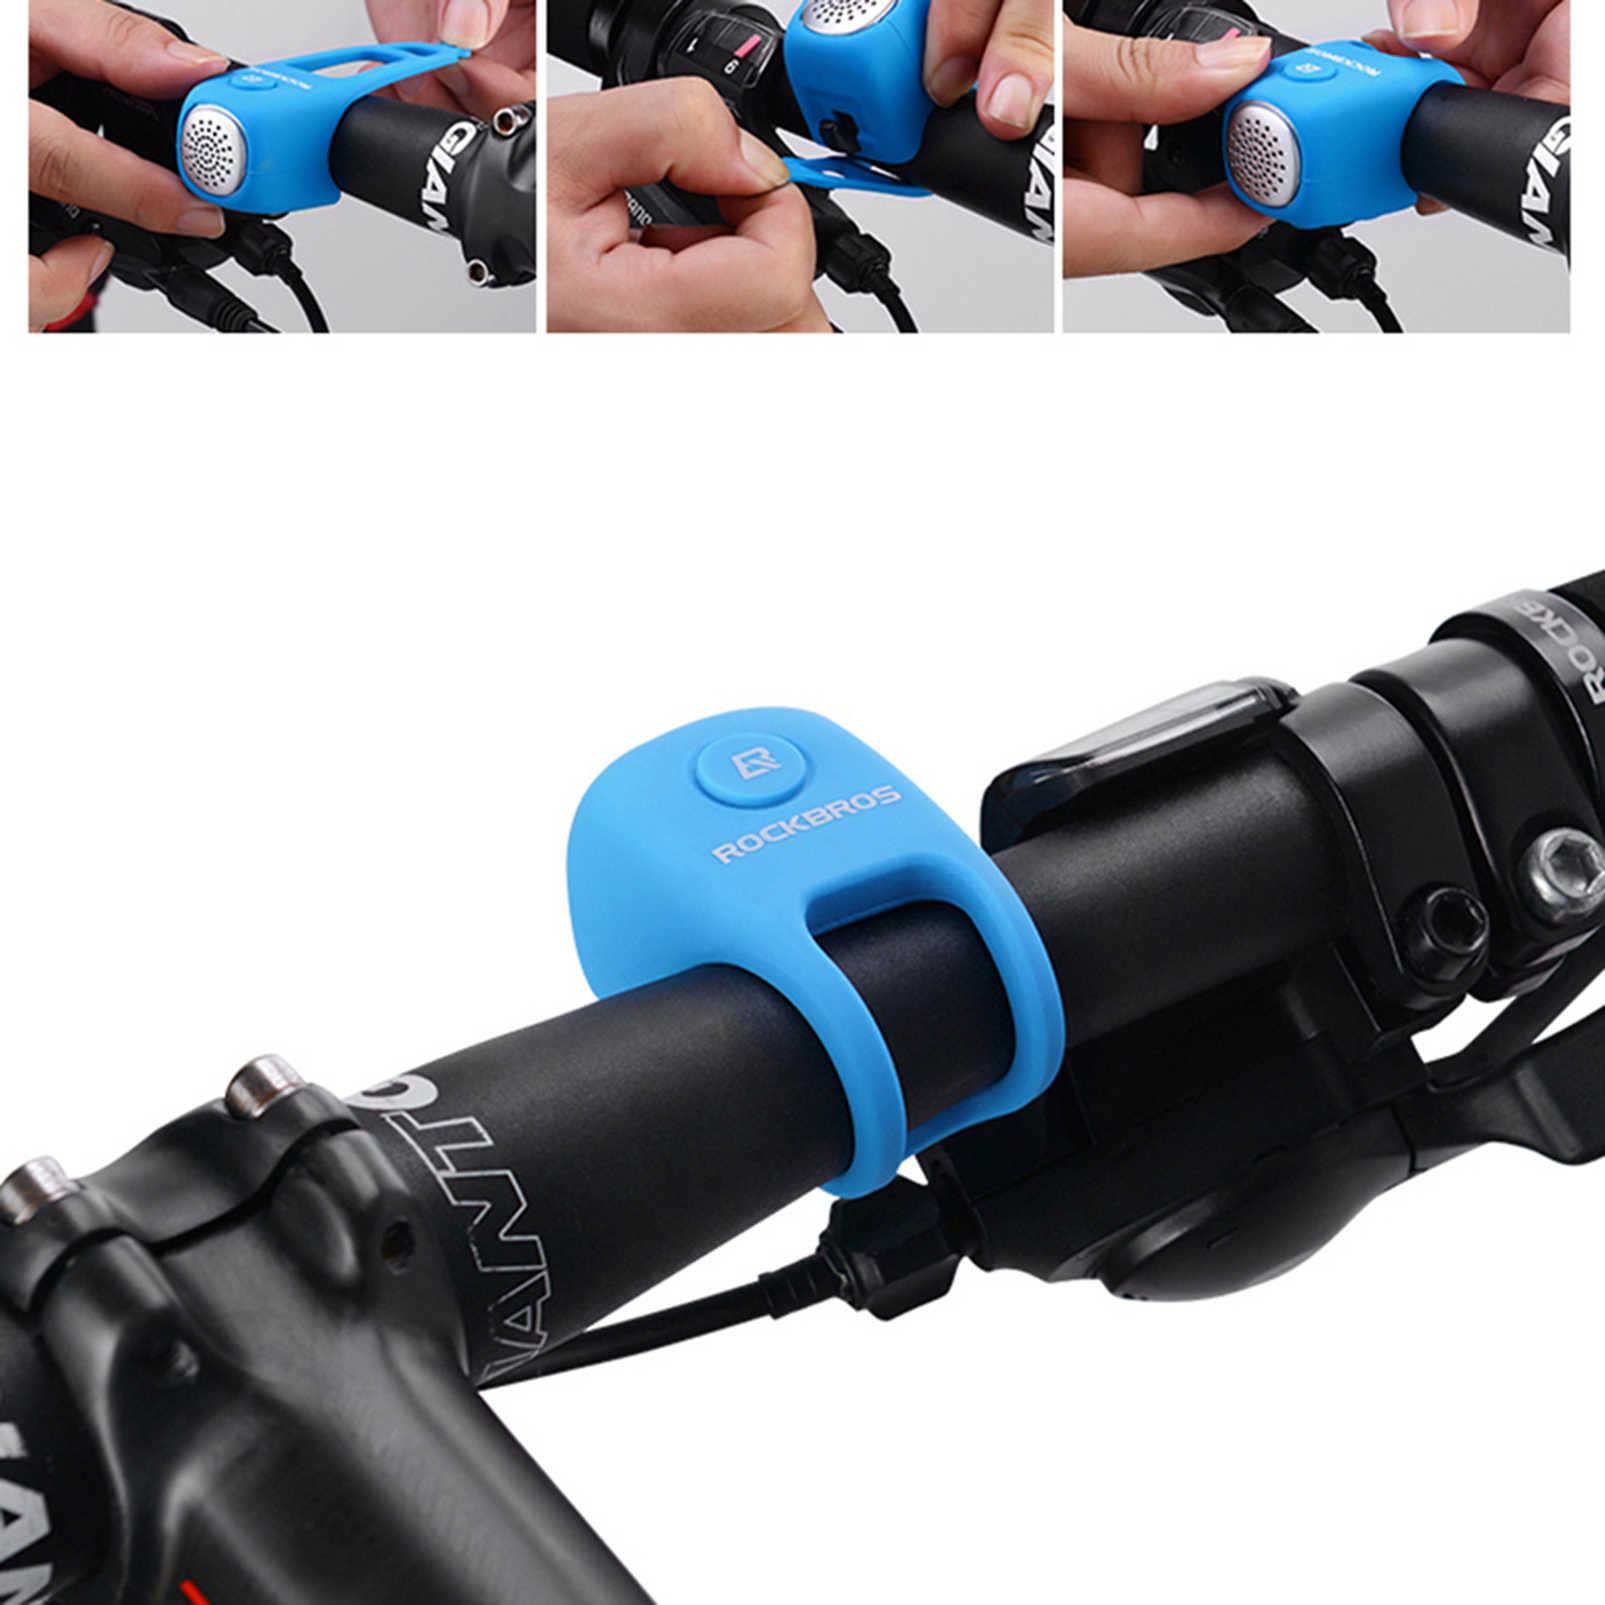 ROCKBROS Electric Cycling Bells Horn Rainproof MTB Bicycle Handlebar Bell Silica gel Shell Ring Saving Bell Bicycle Accessory